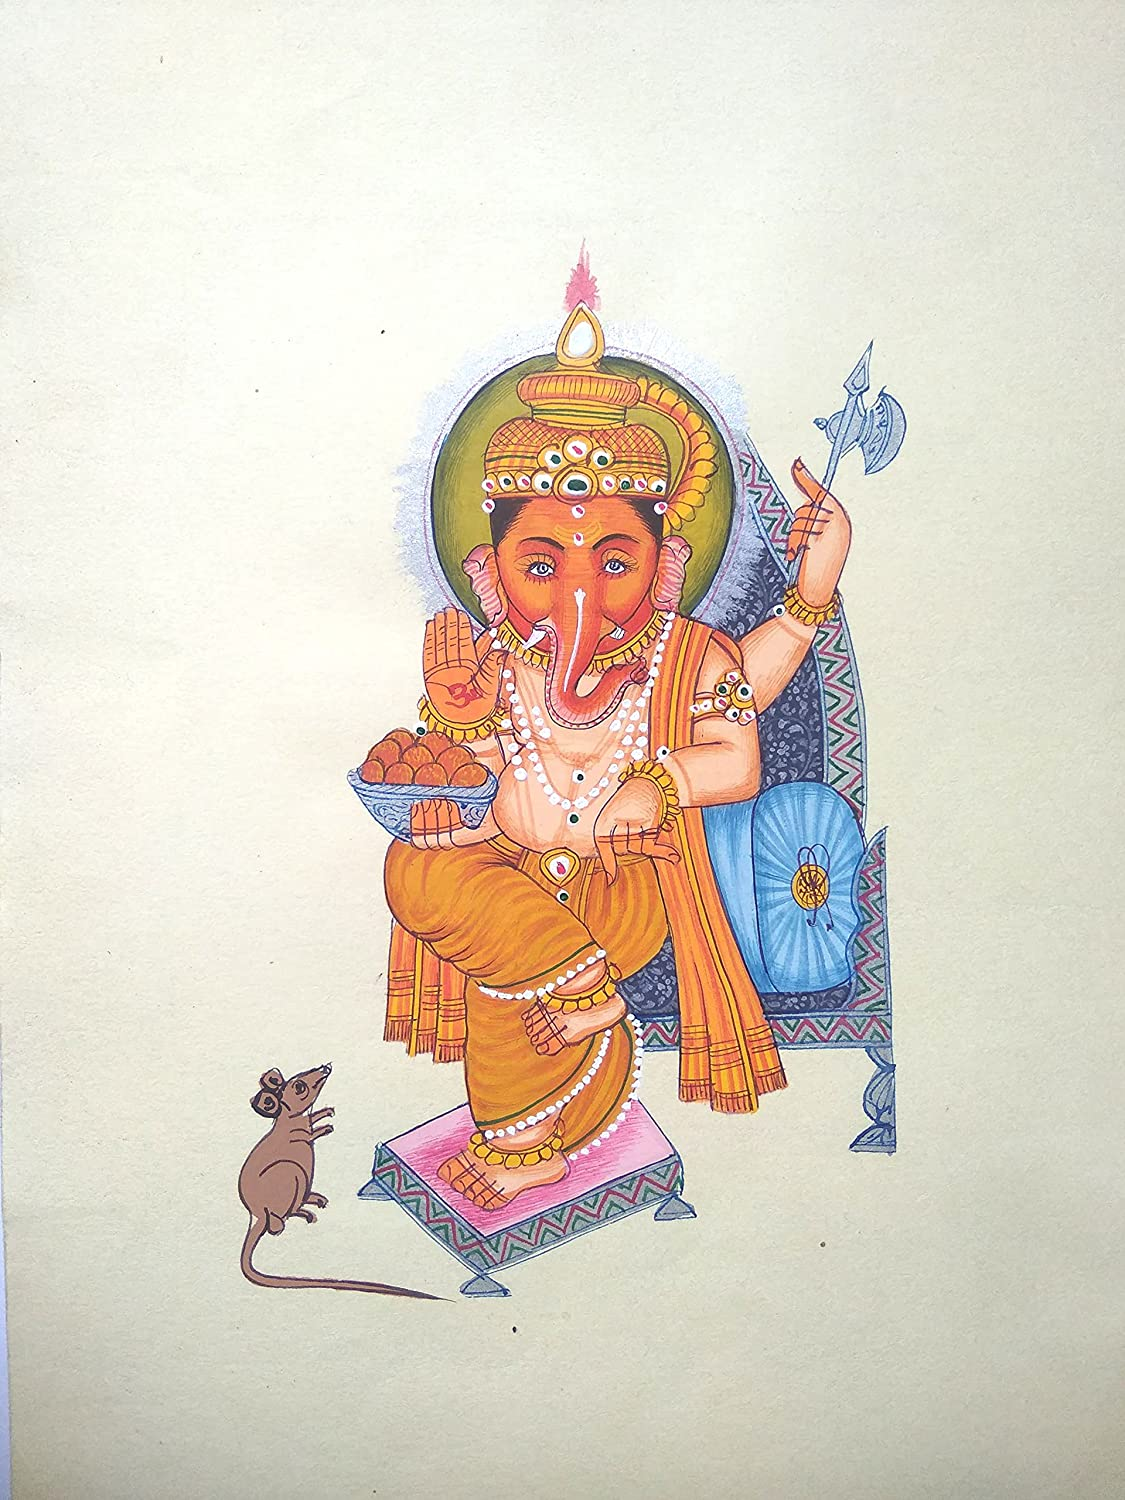 Popular brand in the world Indian Lord Ganesha Painting Religious Ranking TOP1 Handmade Miniature Handcr